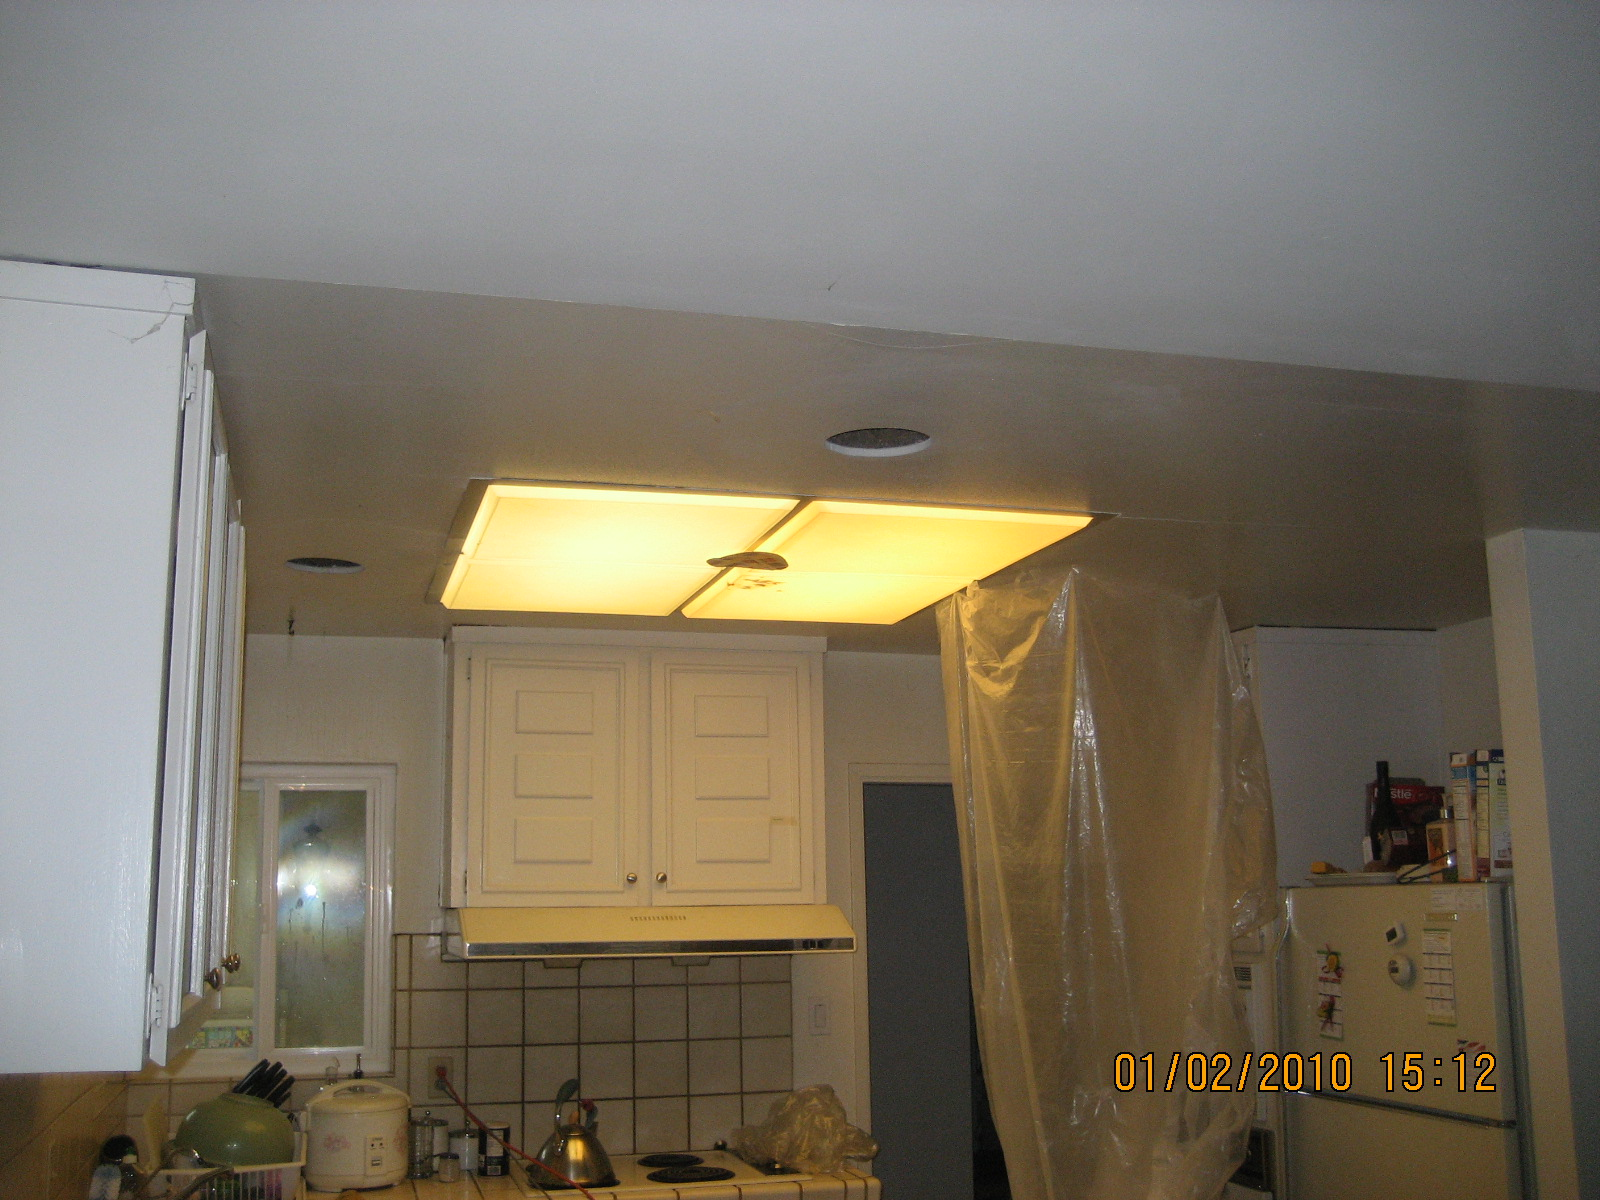 diynovice blogspot kitchen fluorescent light covers DIY Kitchen Remodeling Part II Construction